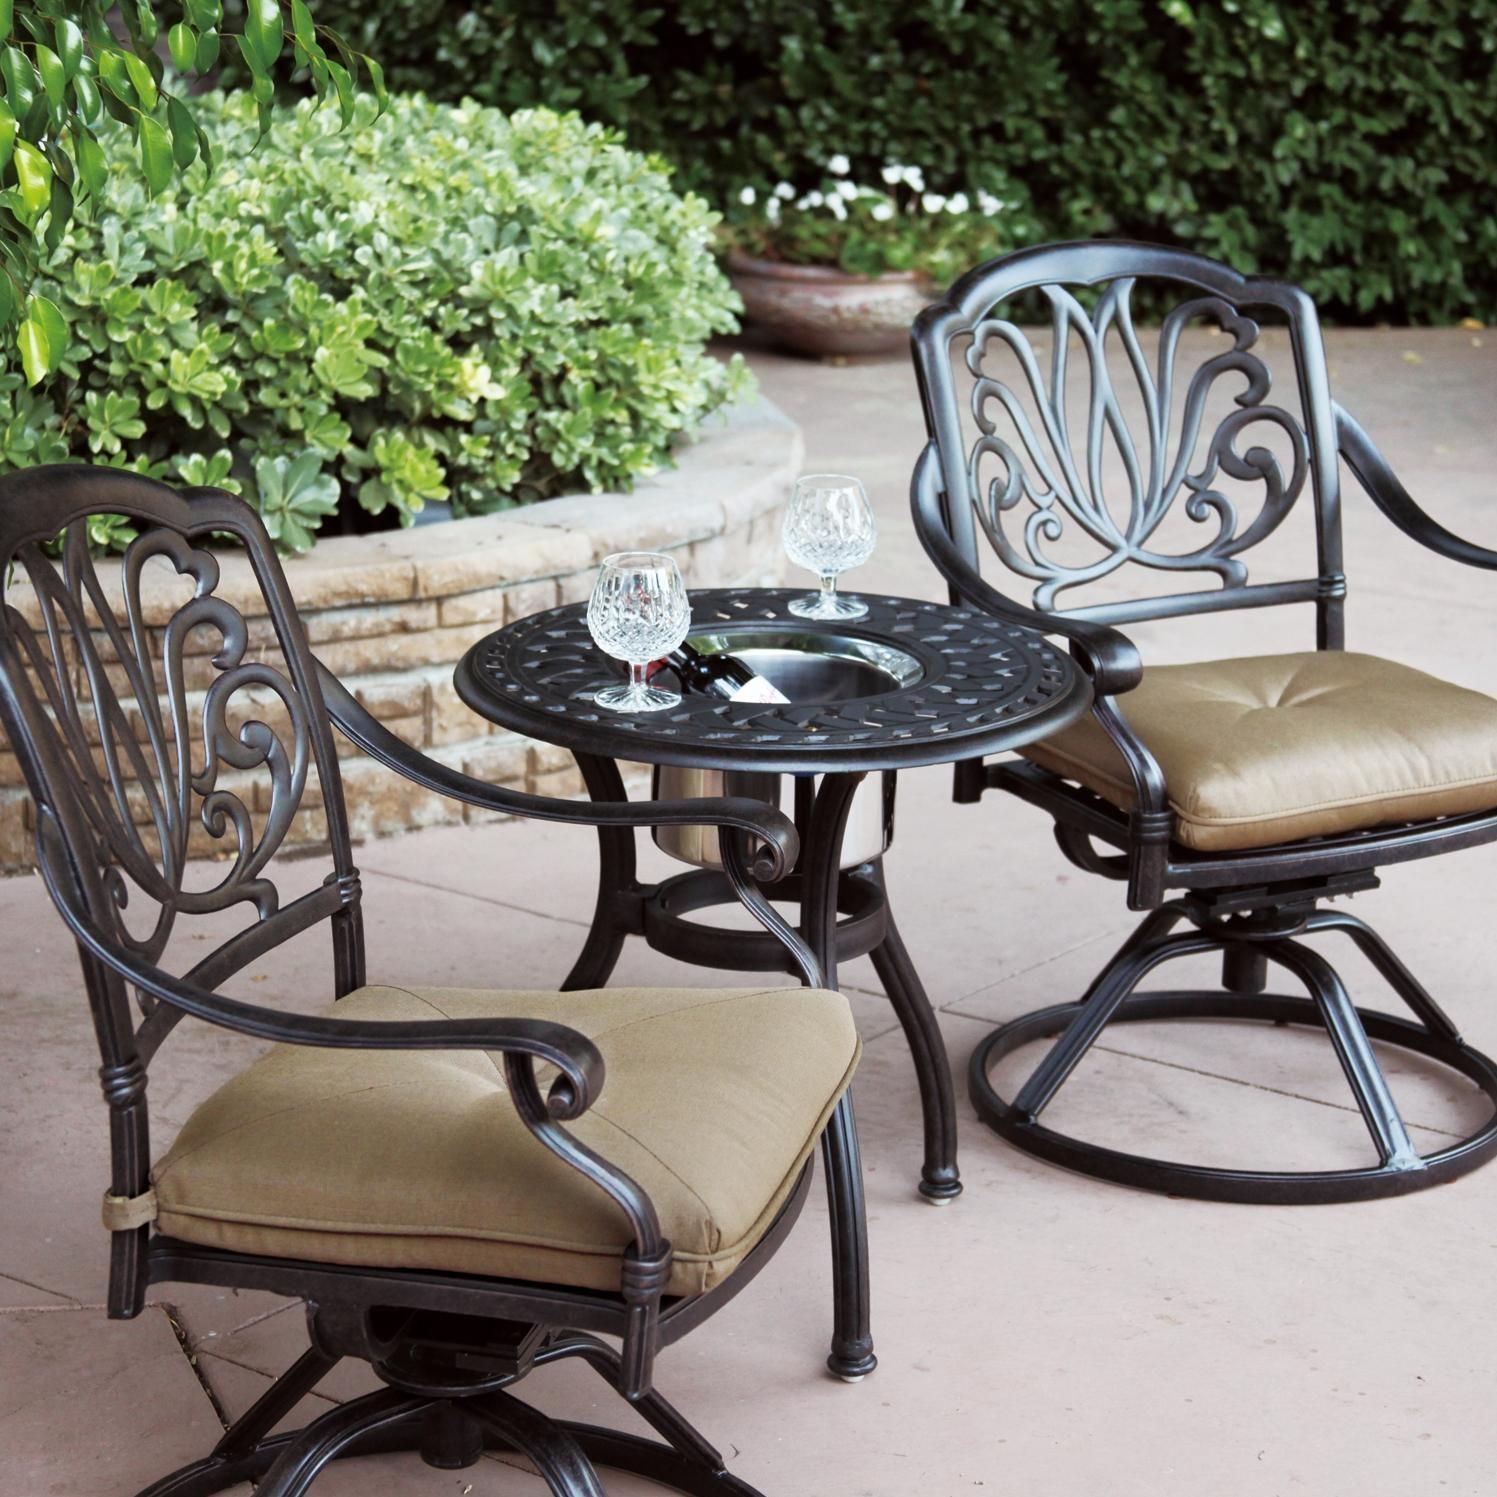 Outdoor Cafe Chairs Darlee Elisabeth 3 Piece Cast Aluminum Patio Bistro Set